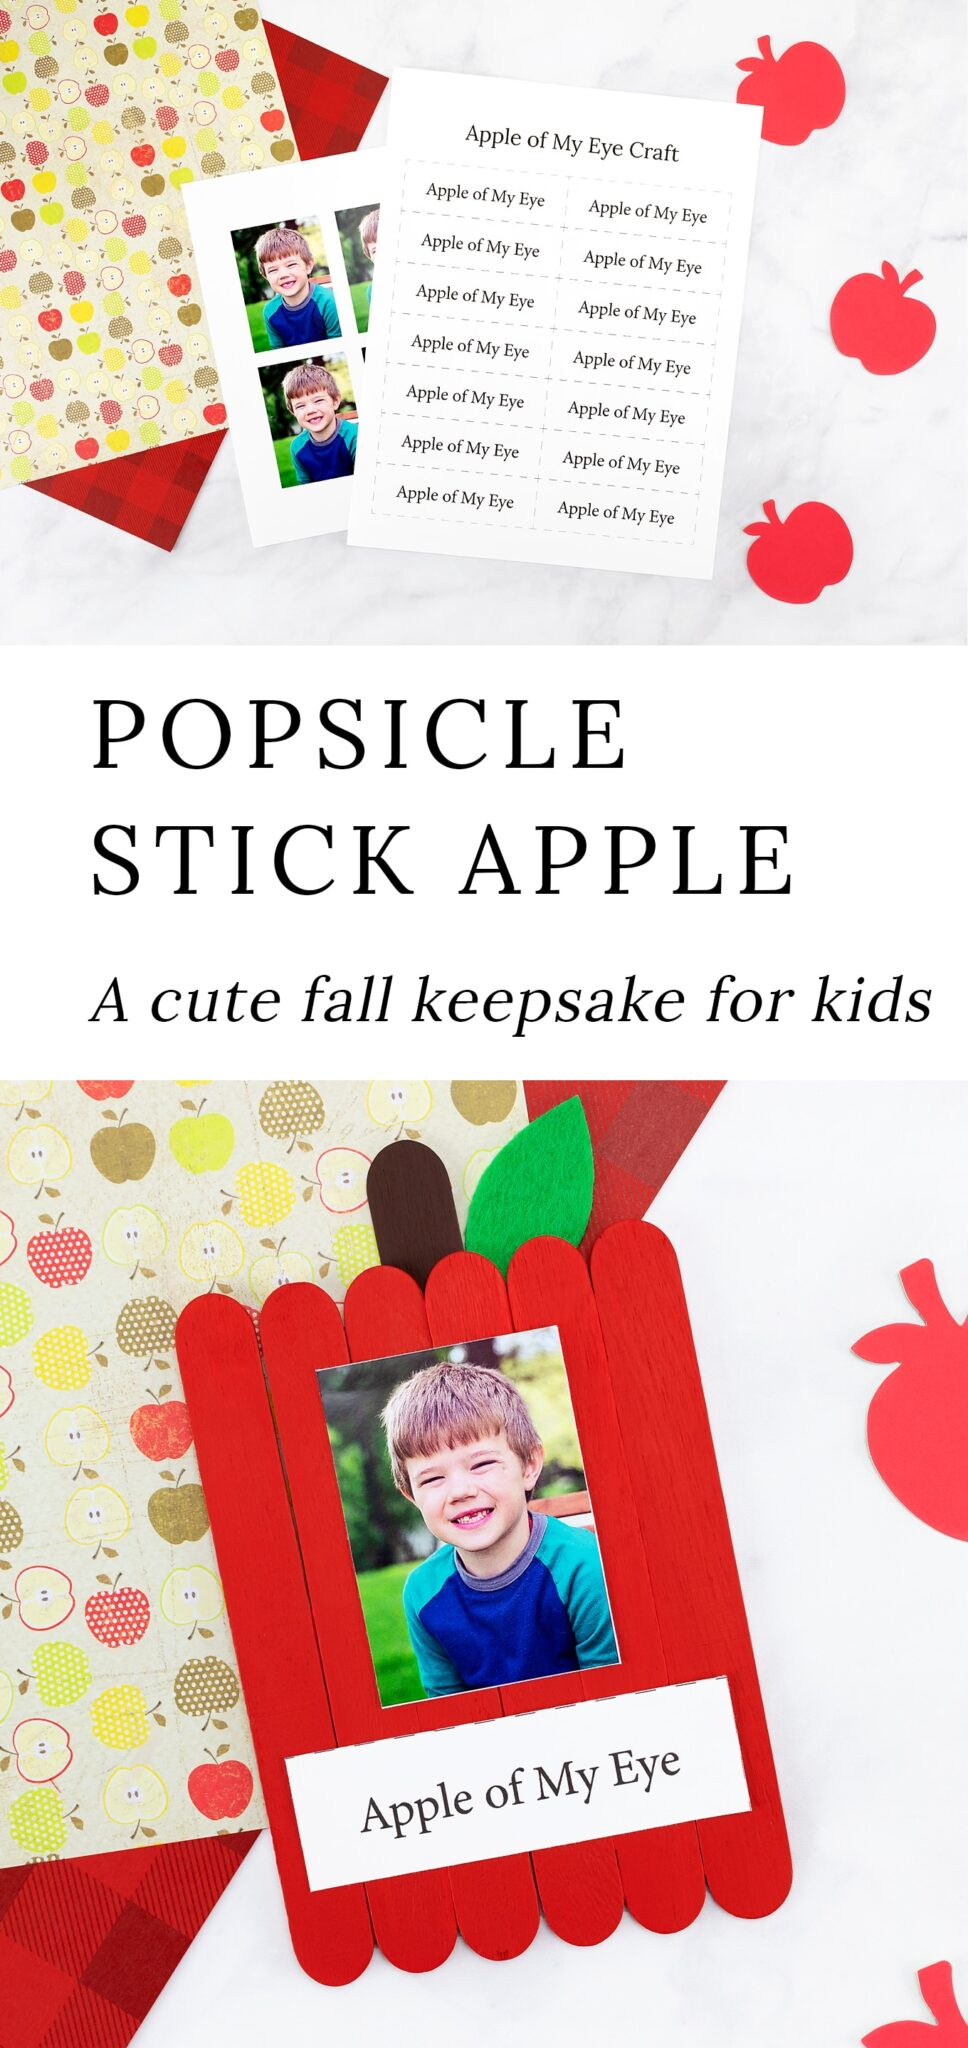 Popsicle Stick Apple Craft for Kids